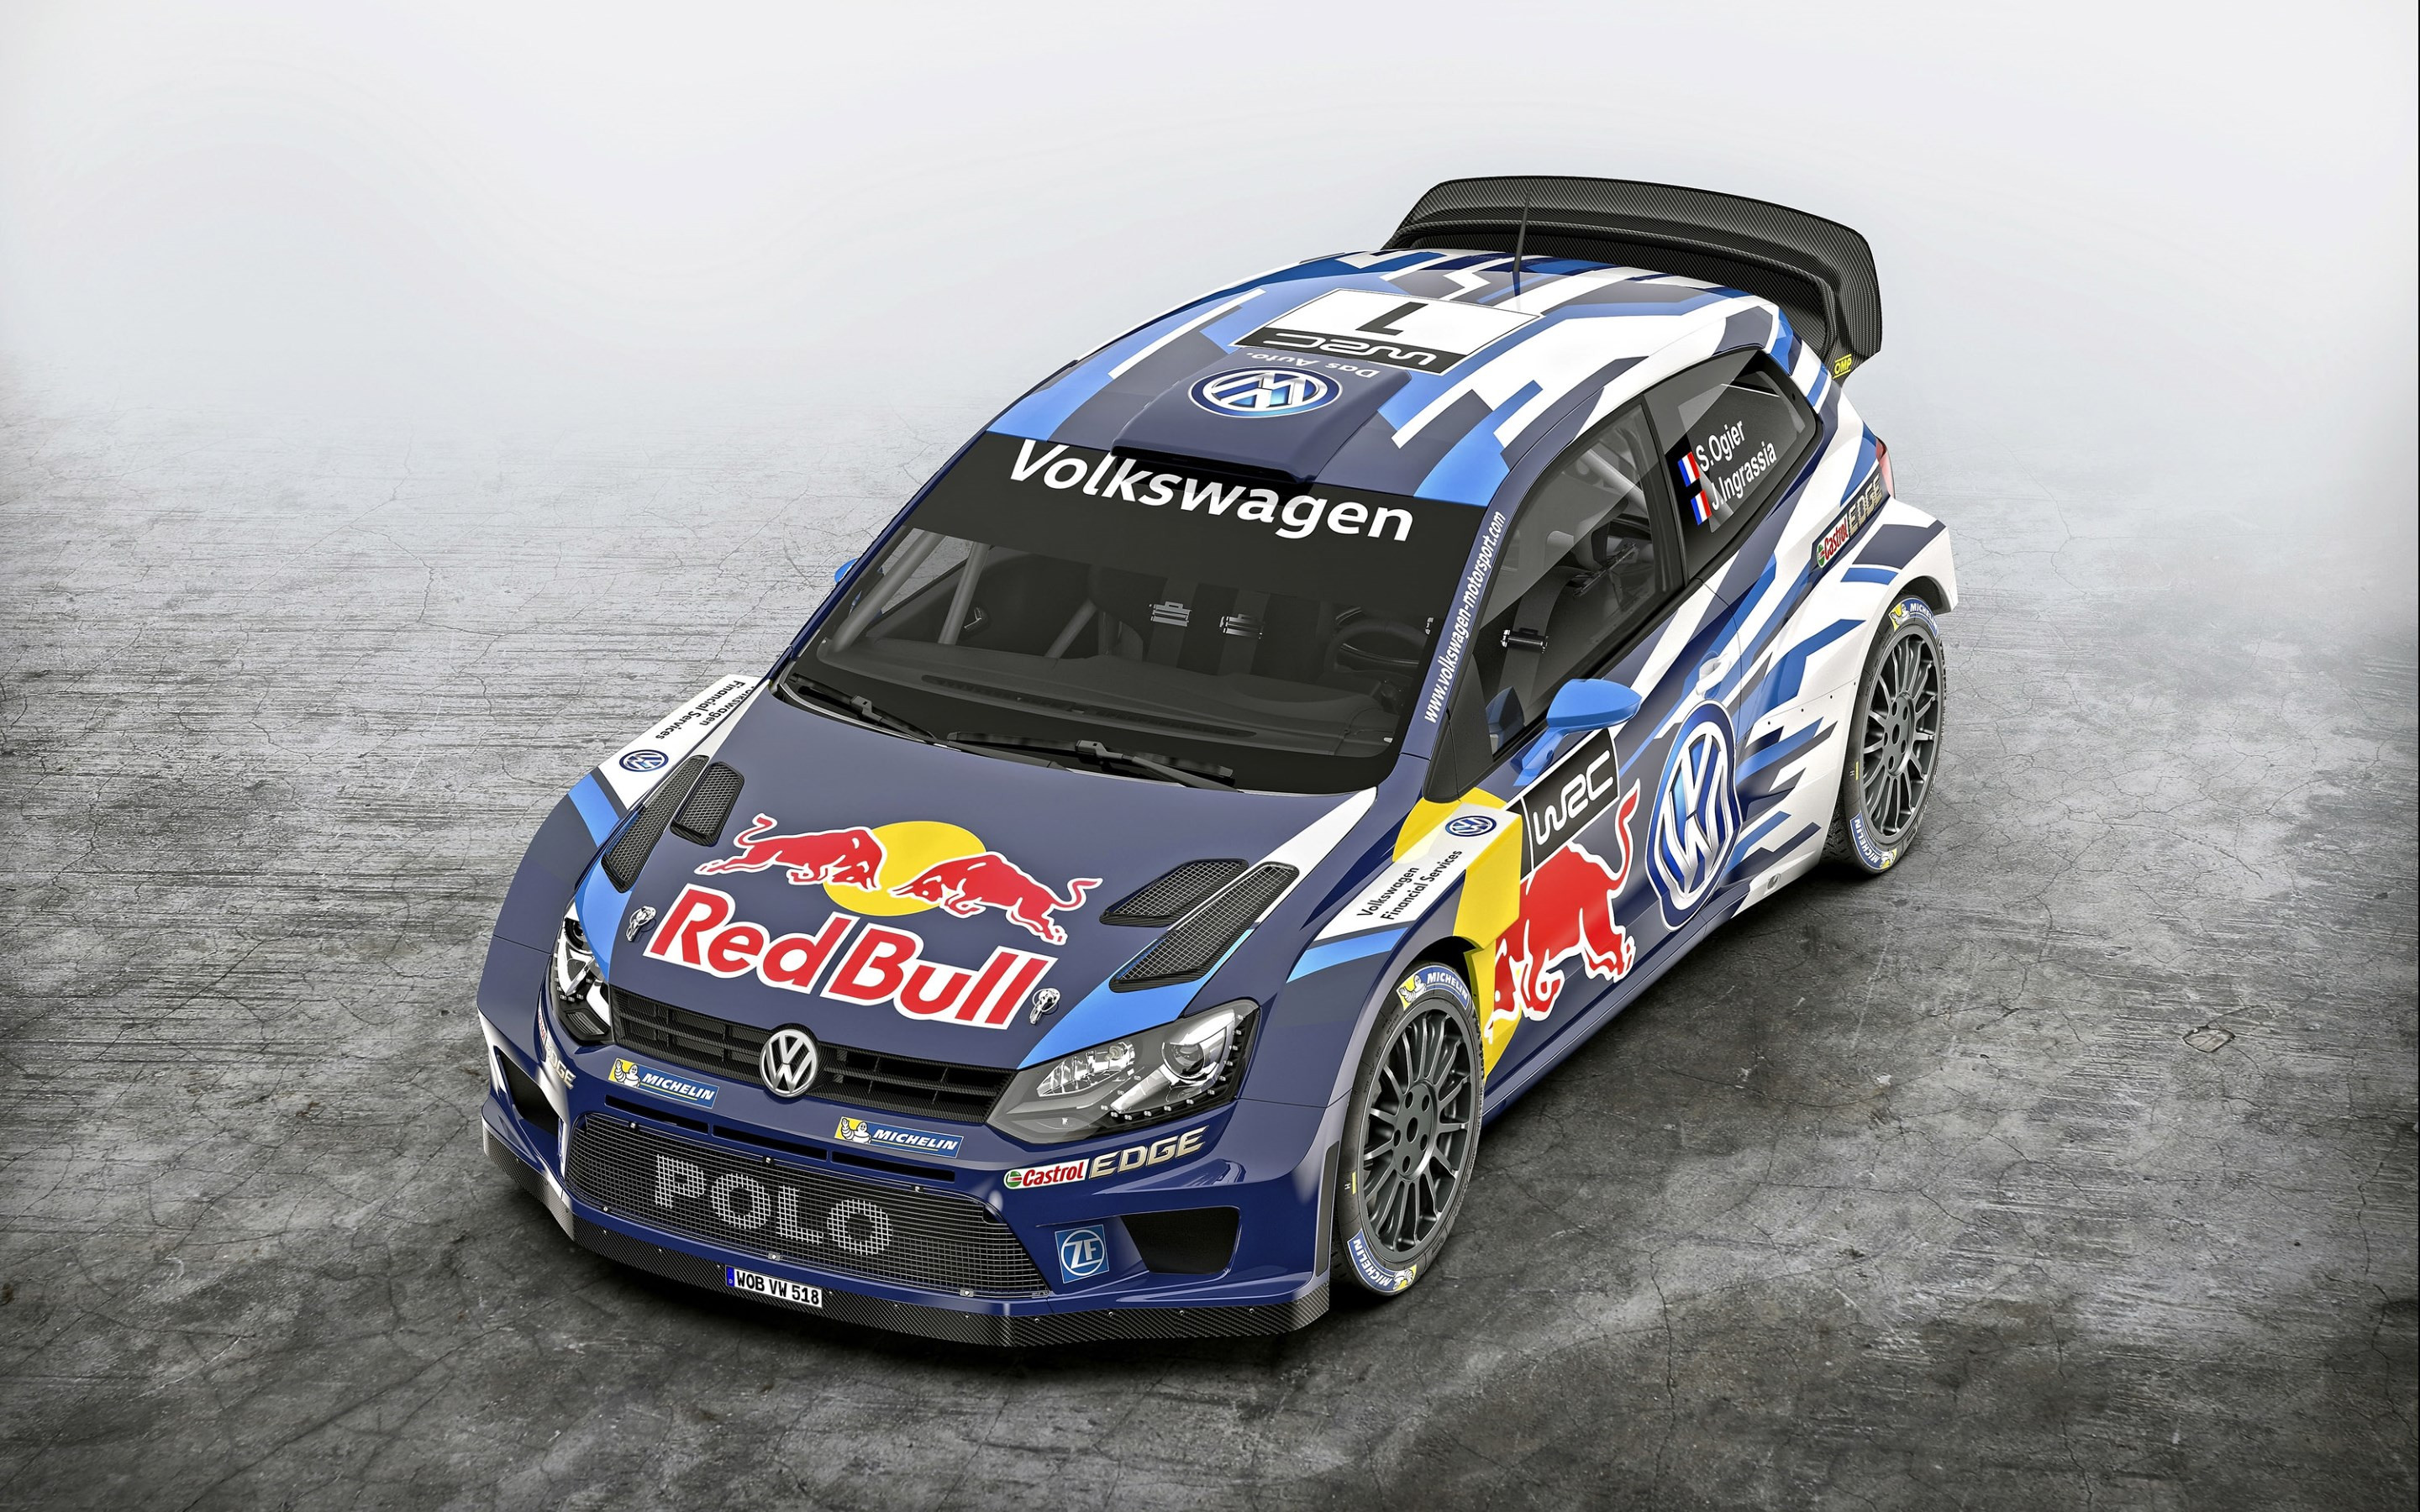 Volkswagen Polo R WRC wallpaper 2880x1800